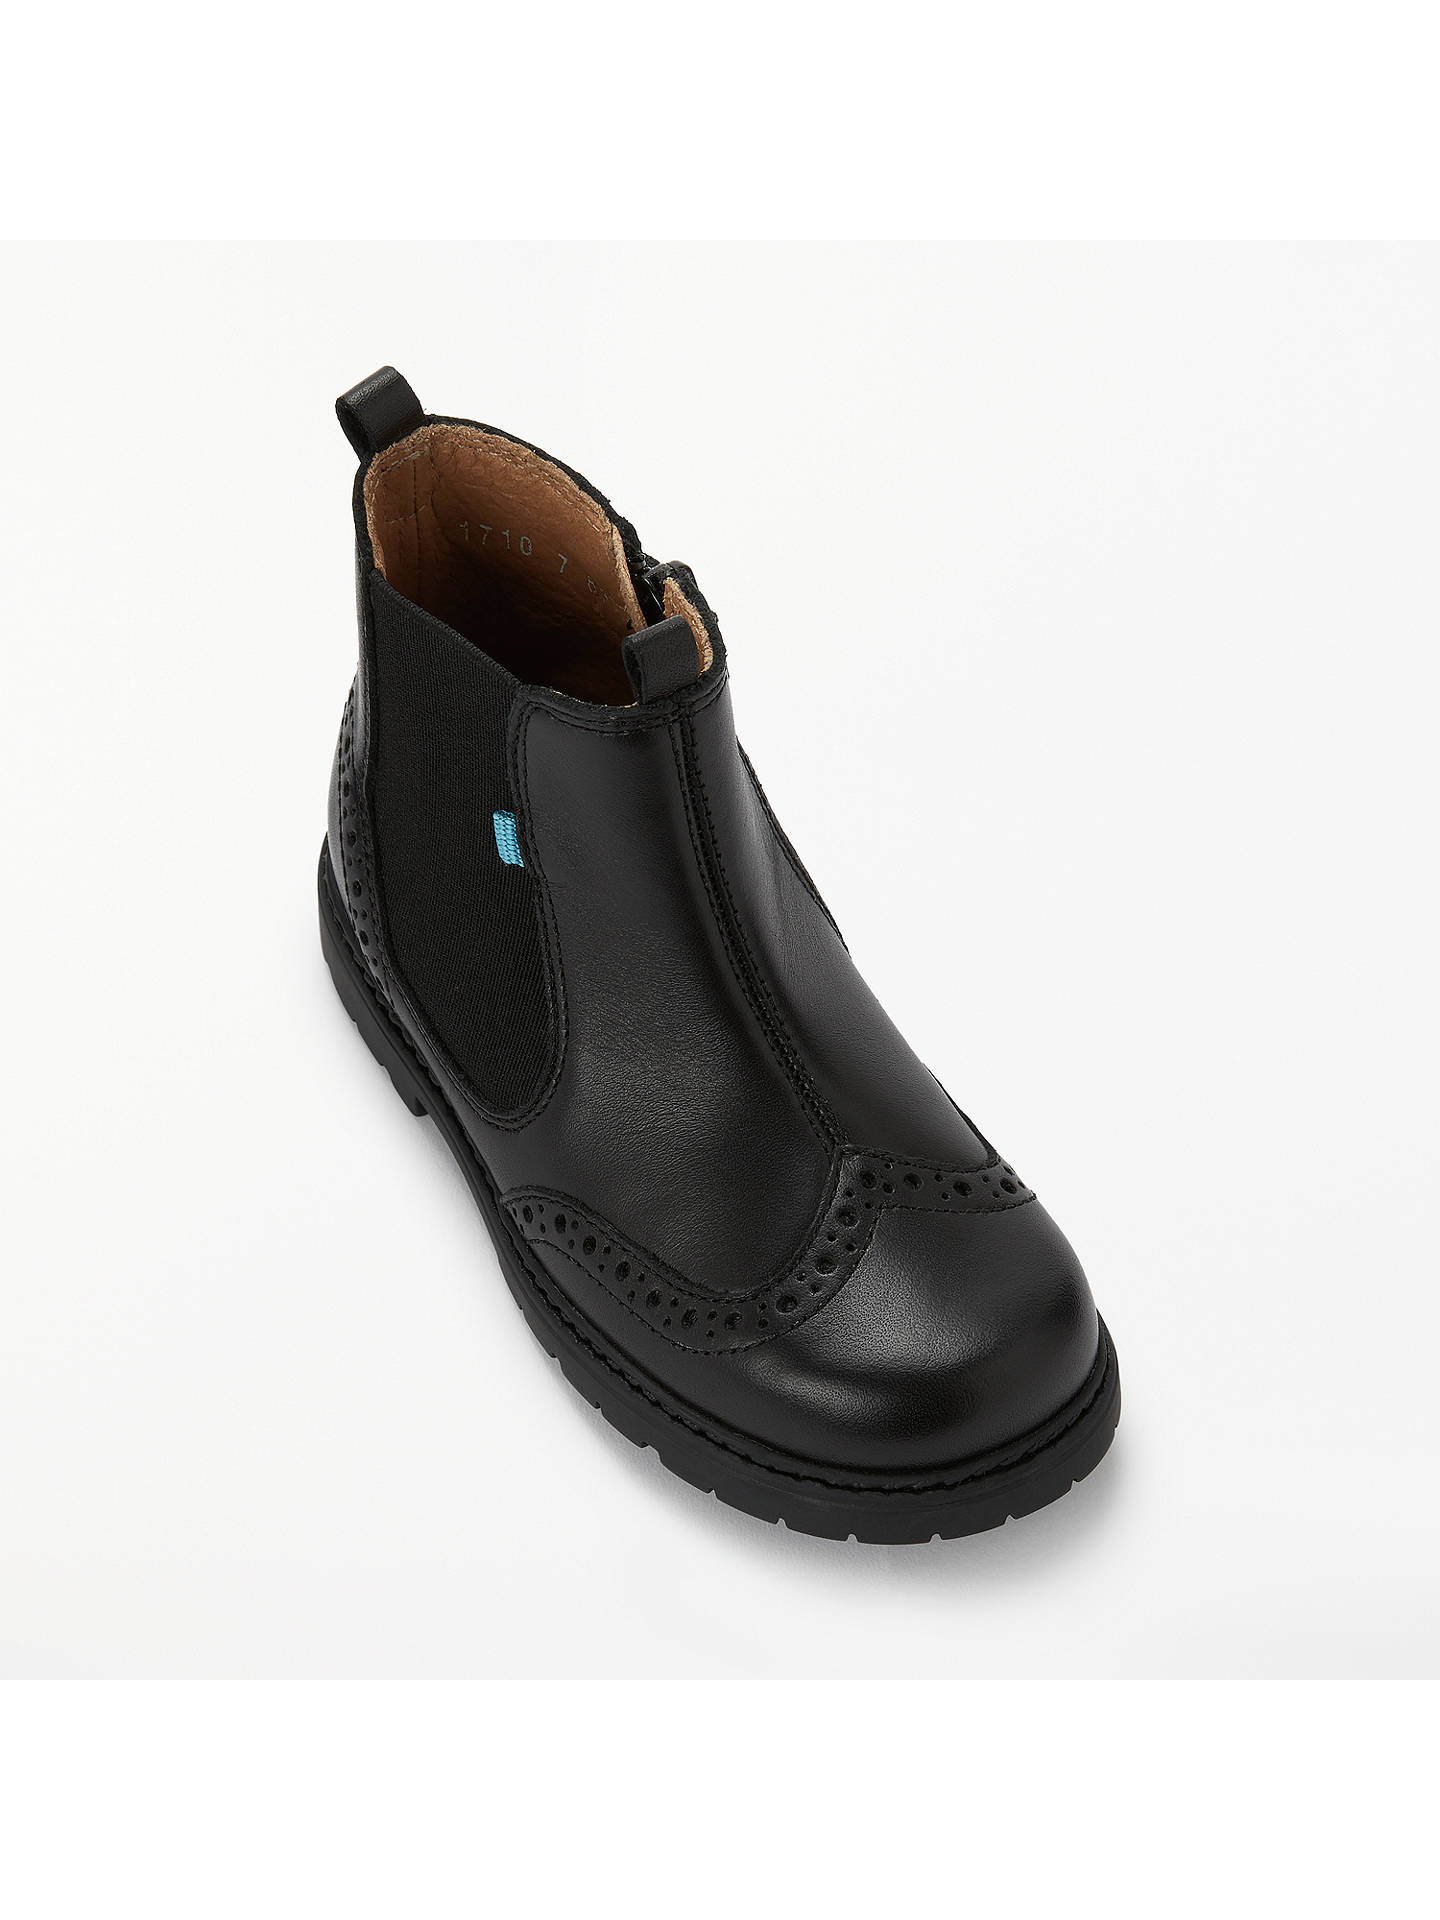 BuyStart-Rite Children's Digby Chelsea Boots, Black, 12.5F Jnr Online at johnlewis.com